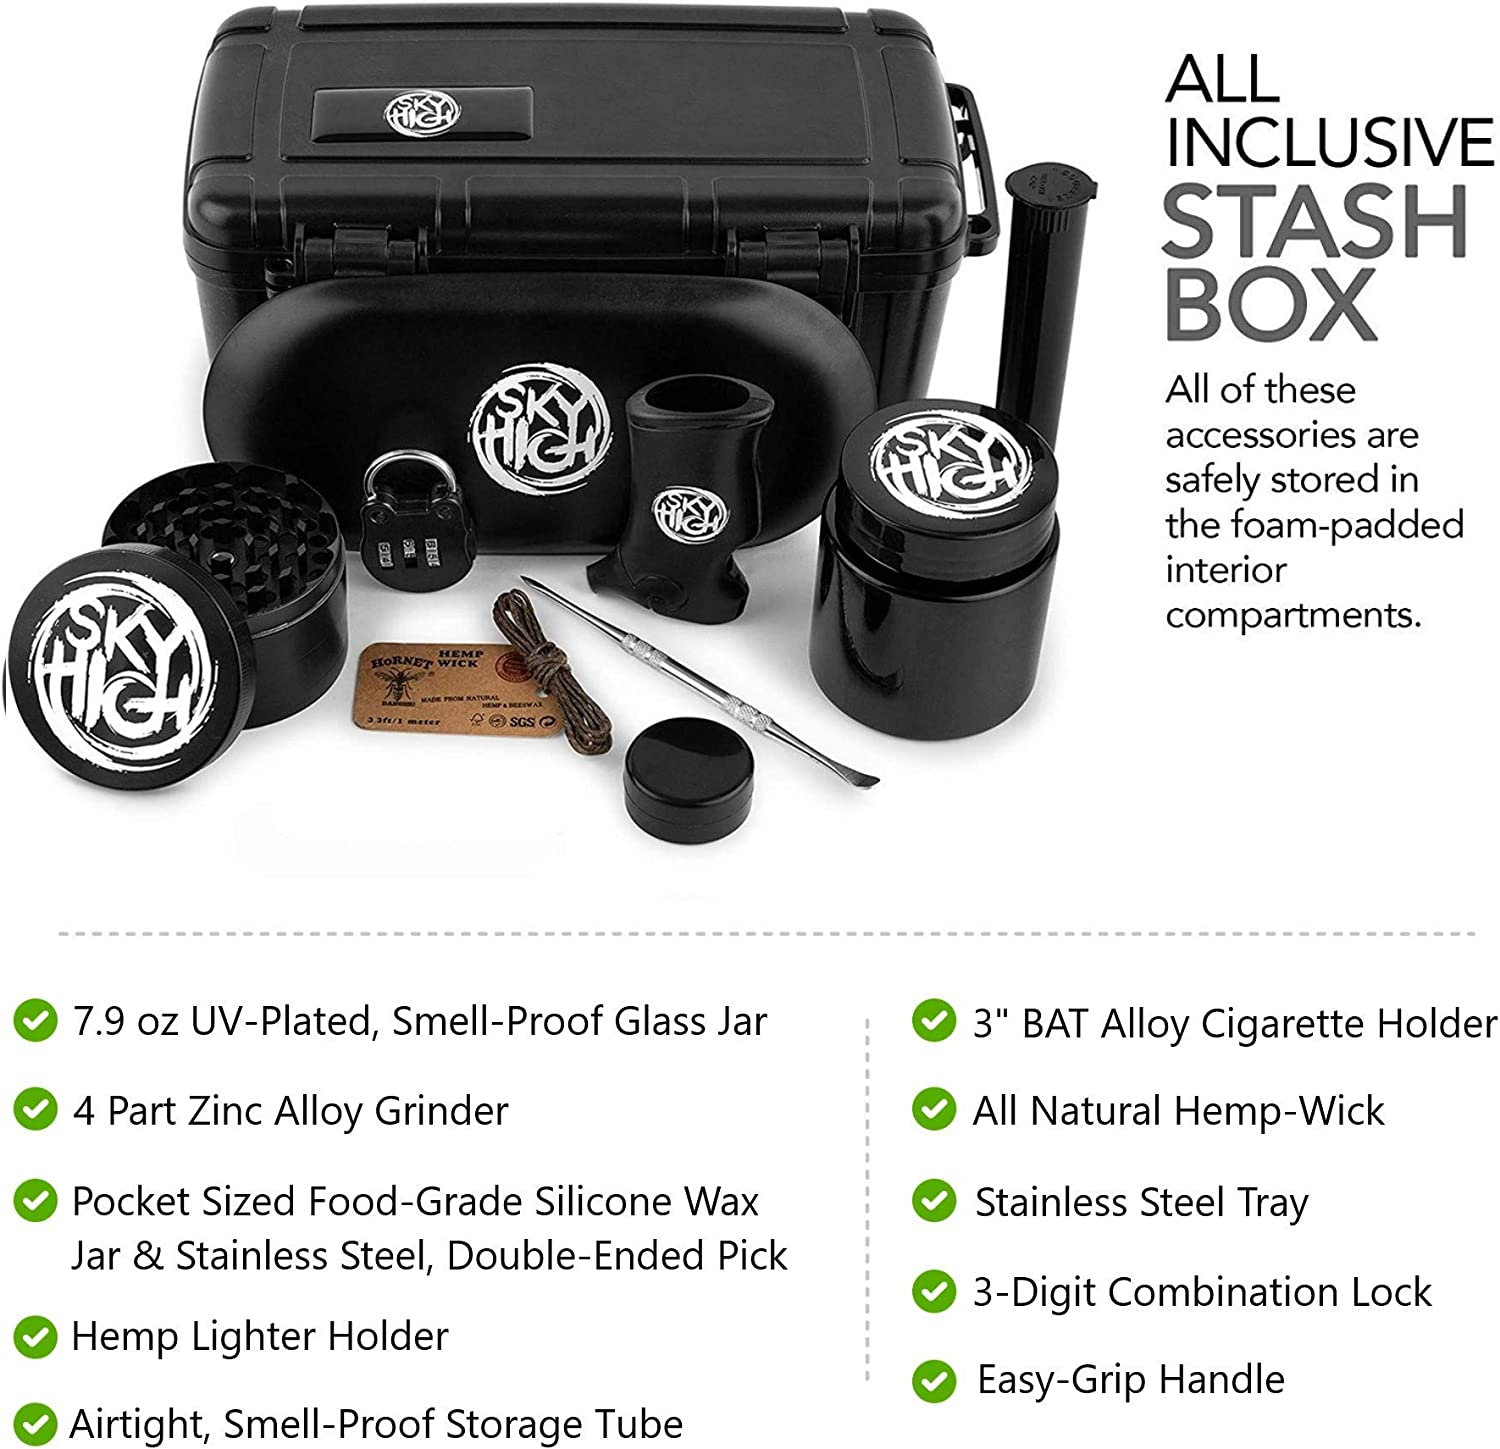 Sky High Plastic Stash box with accessories